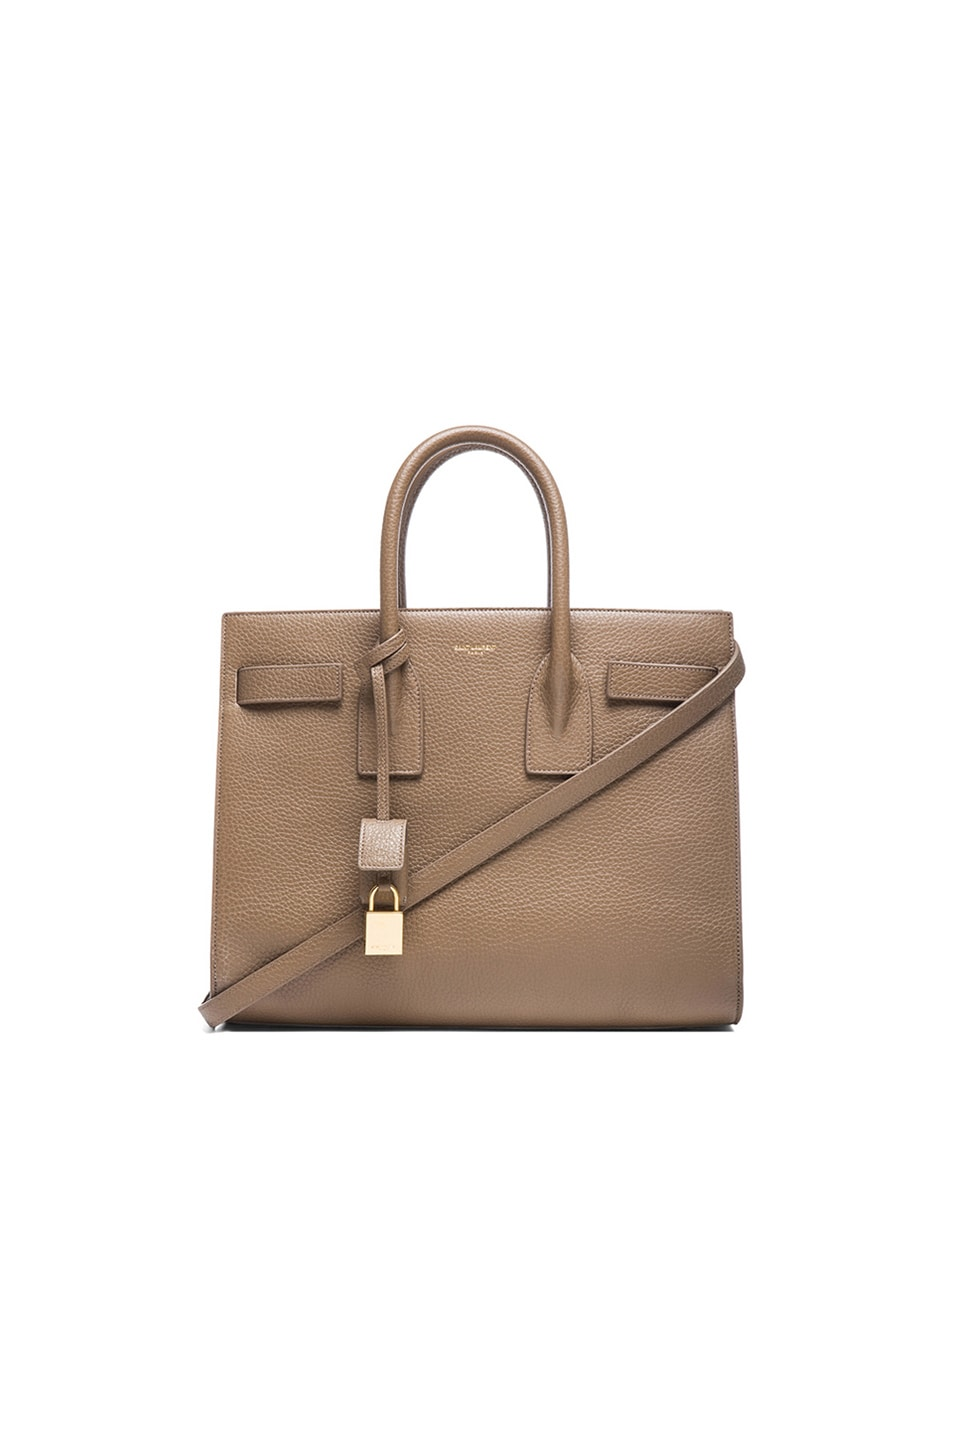 de5e7b67bb2d Image 1 of Saint Laurent Small Sac De Jour Carryall Bag in Taupe